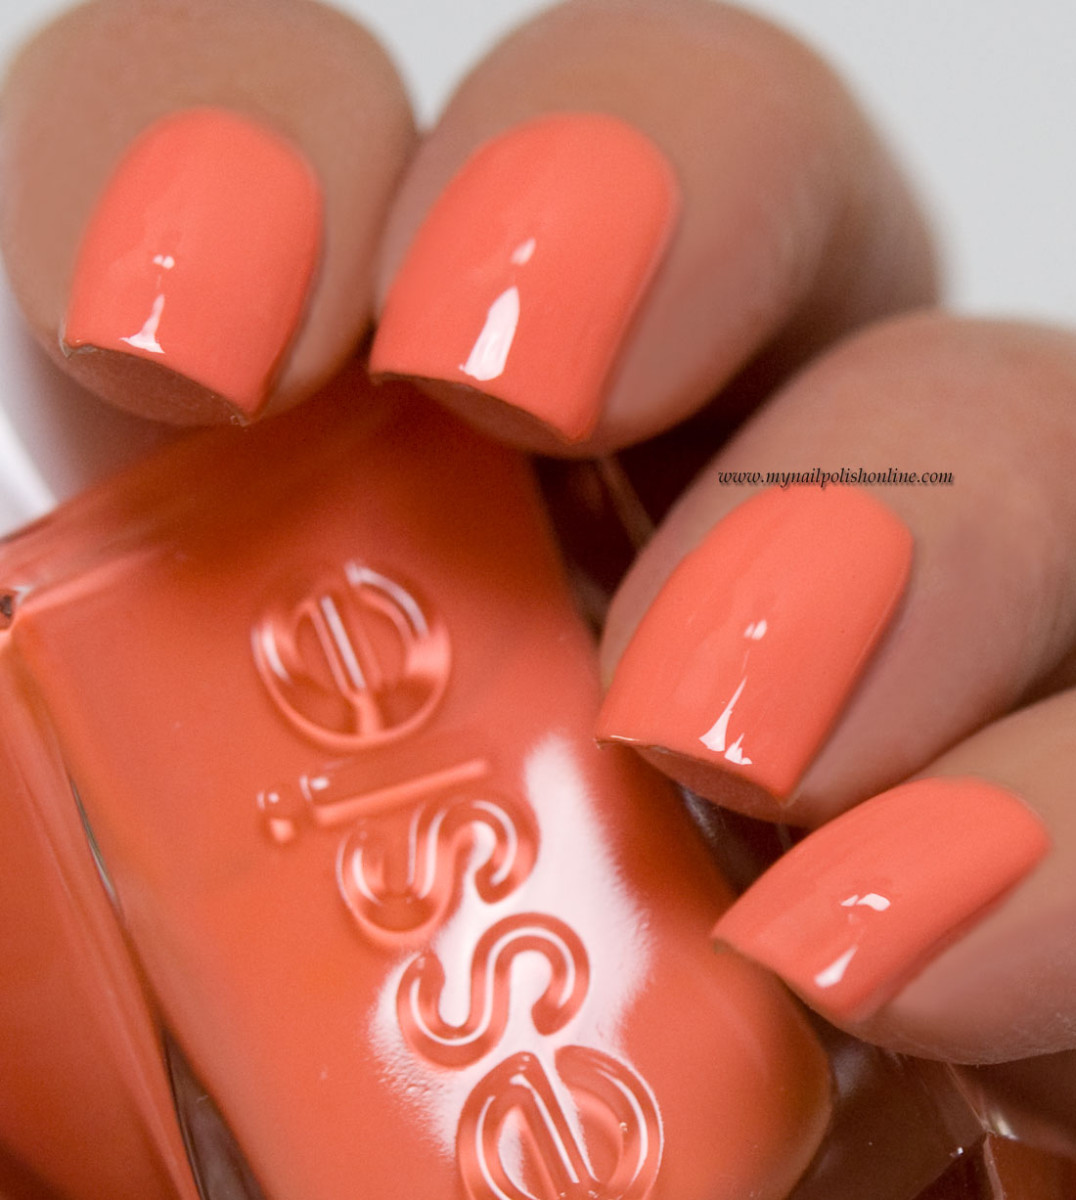 Essie - Looks to Thrill - My Nail Polish Online